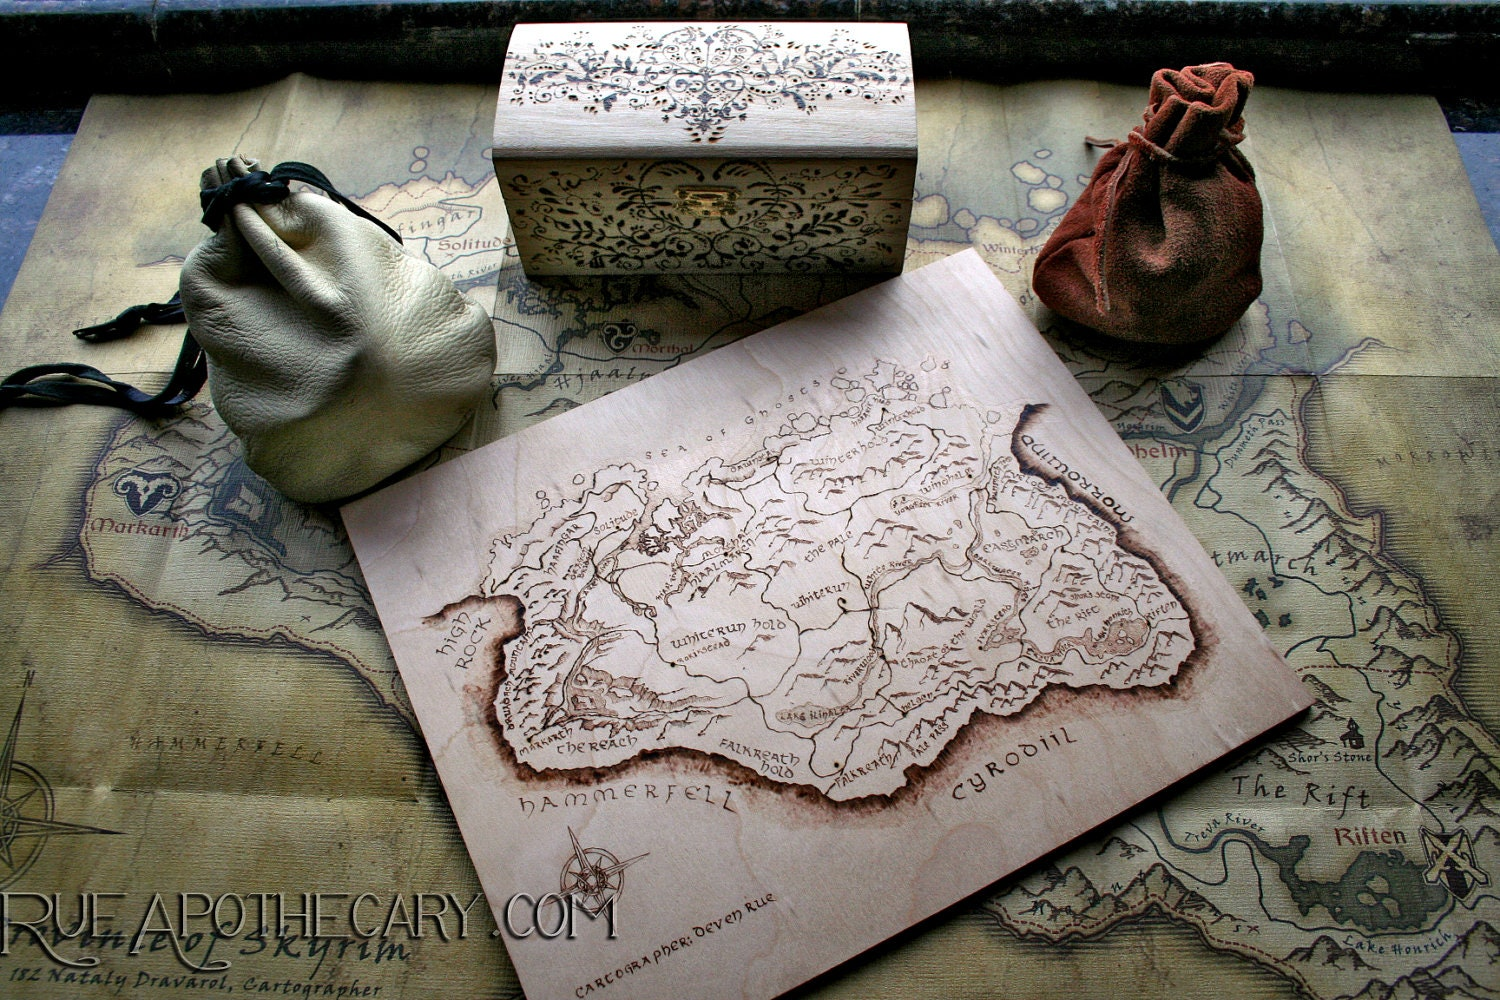 Pyrography Wood Burning Skyrim Map - RueApothecary